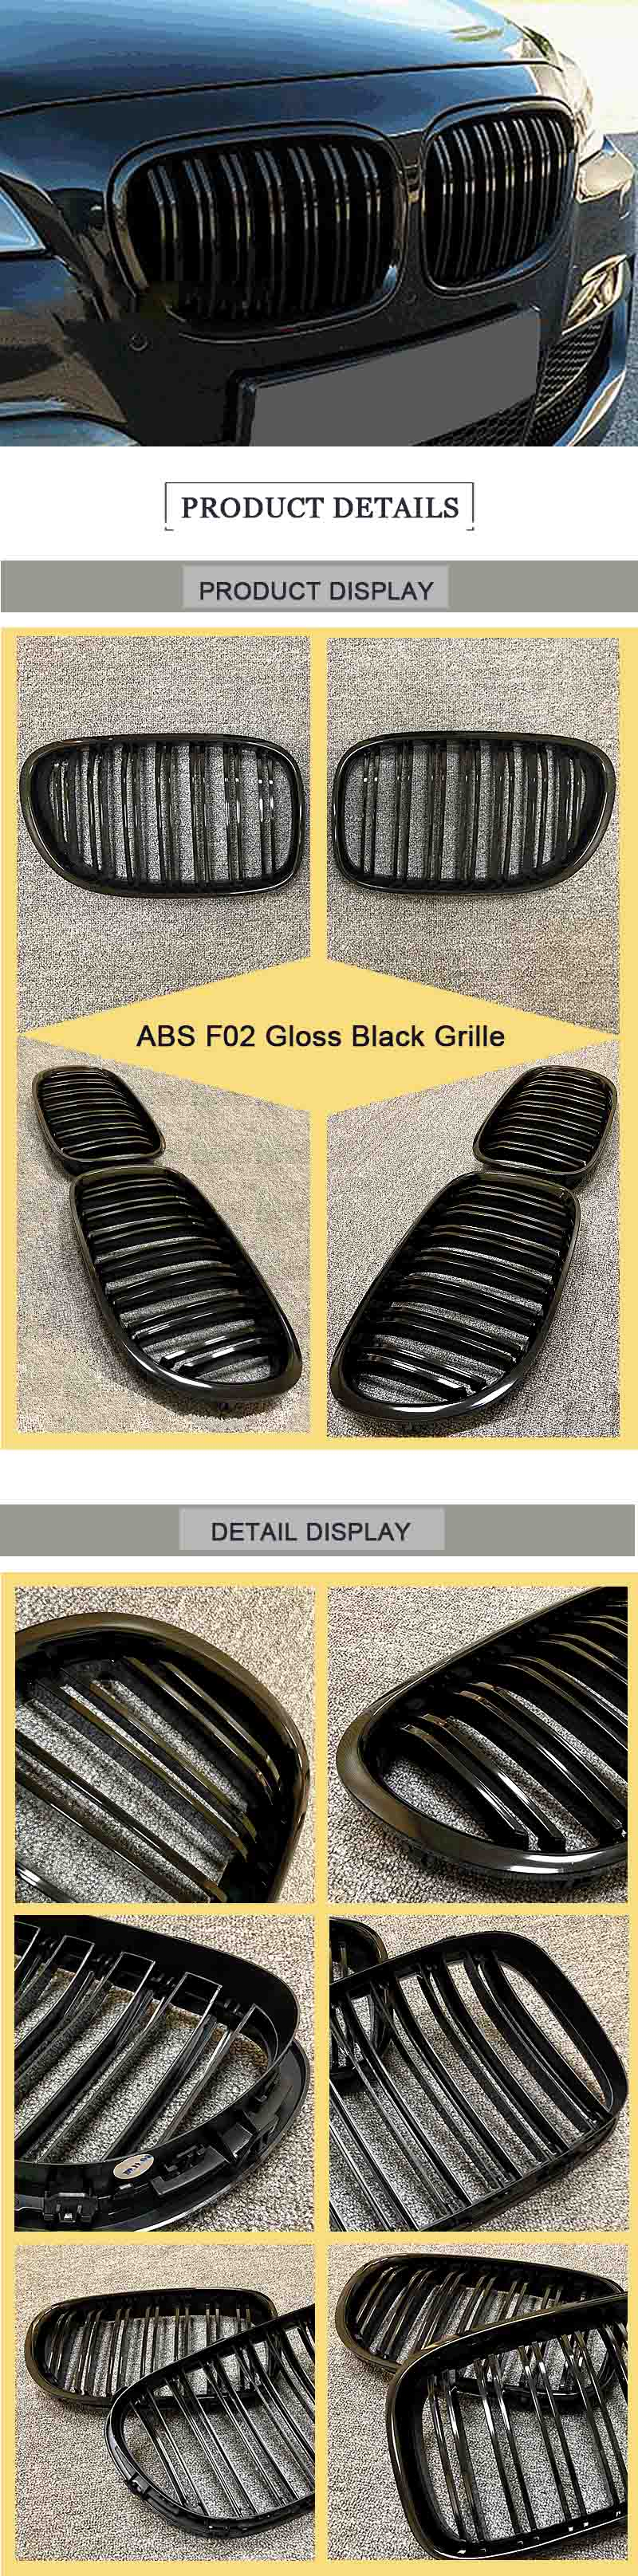 F02 Front Grille ABS Gloss Black For F02 M Style Grills 7 Series 740i 745i 750i 760Li Double Slats Front Kidney Grille 2008 2014 in Racing Grills from Automobiles Motorcycles